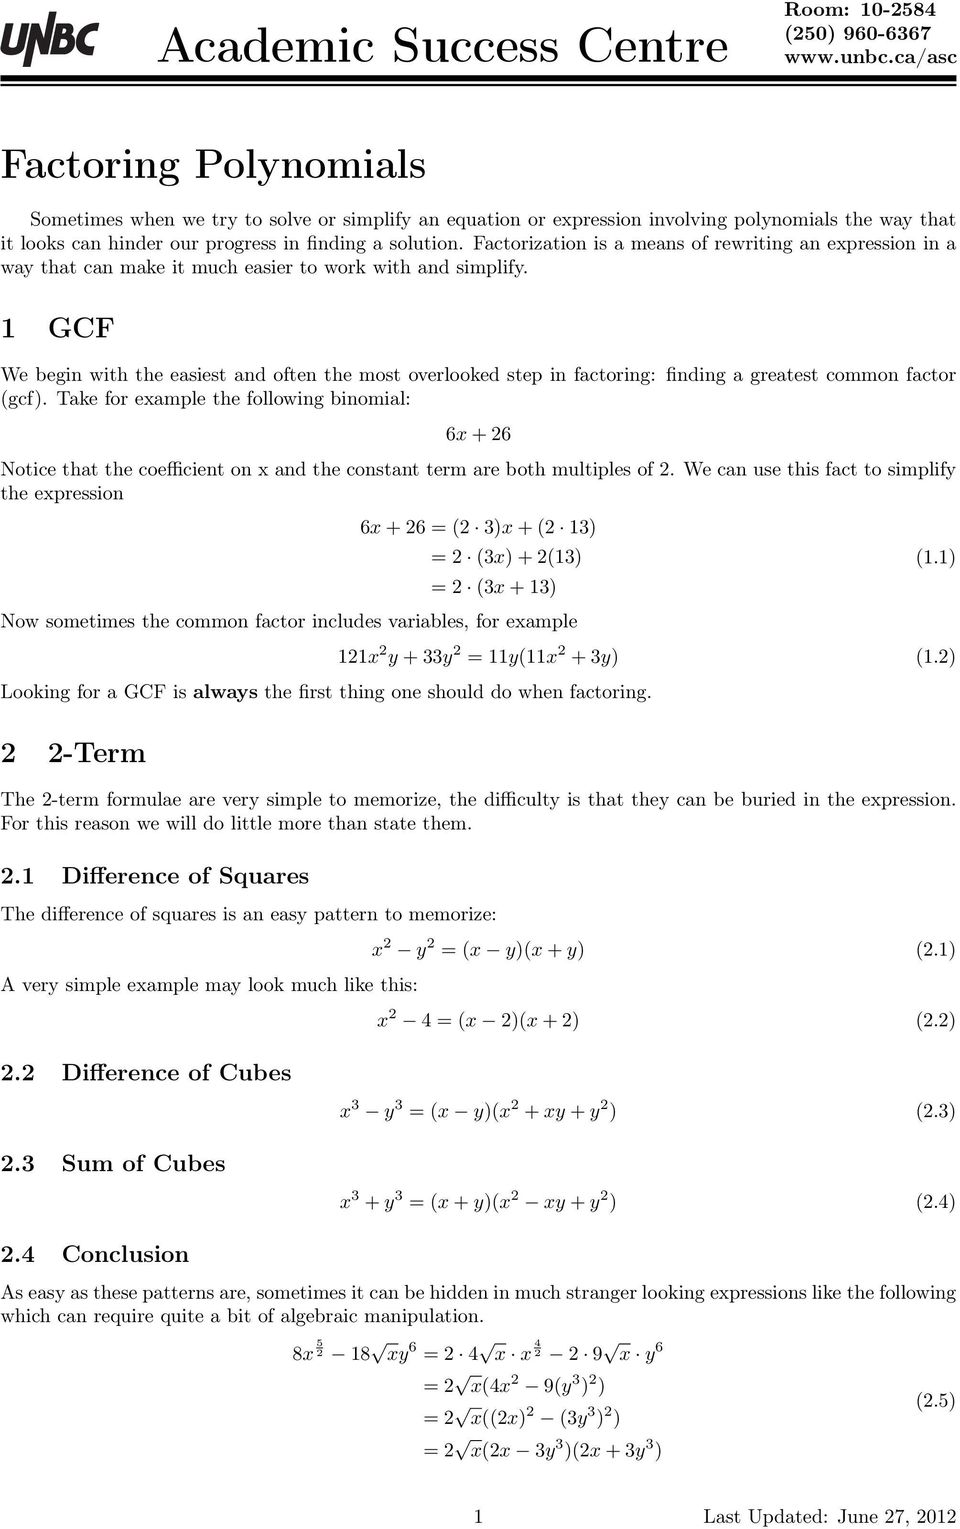 1 GCF We begin with the easiest and often the most overlooked step in factoring: finding a greatest common factor gcf).